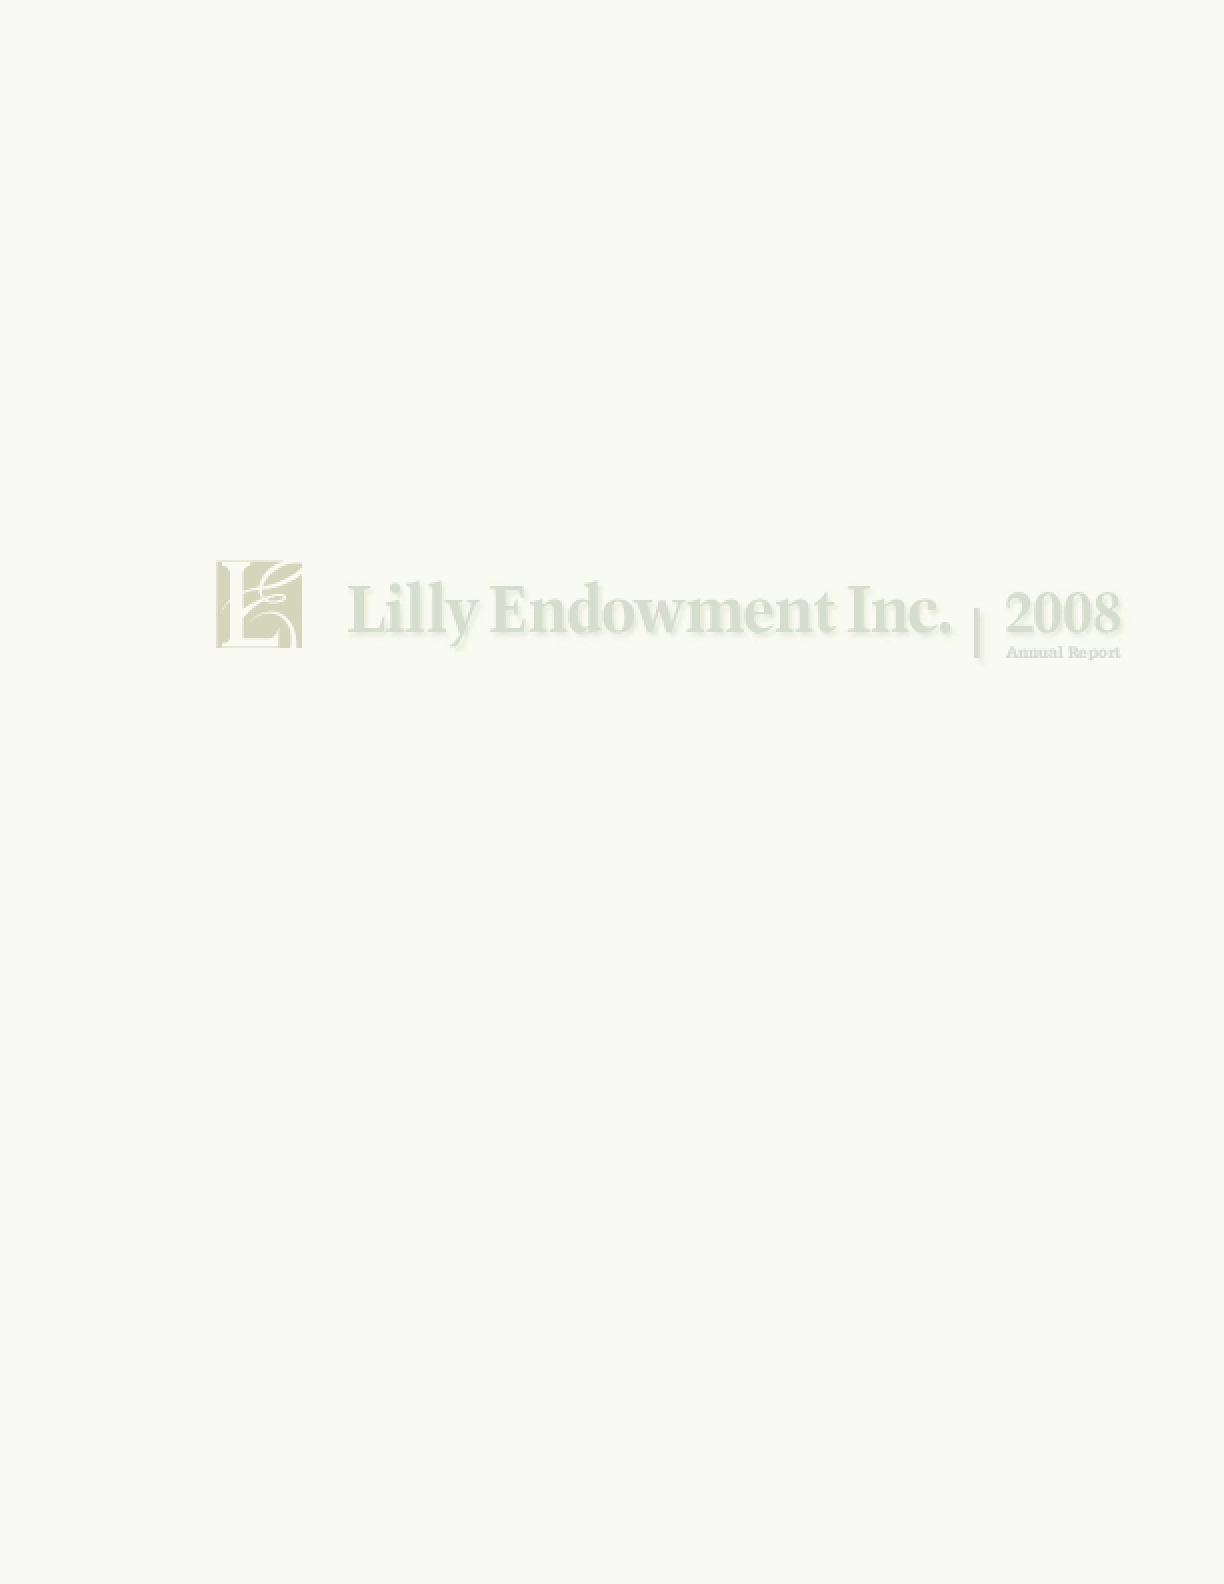 Lilly Endowment, Inc. - 2008 Annual Report